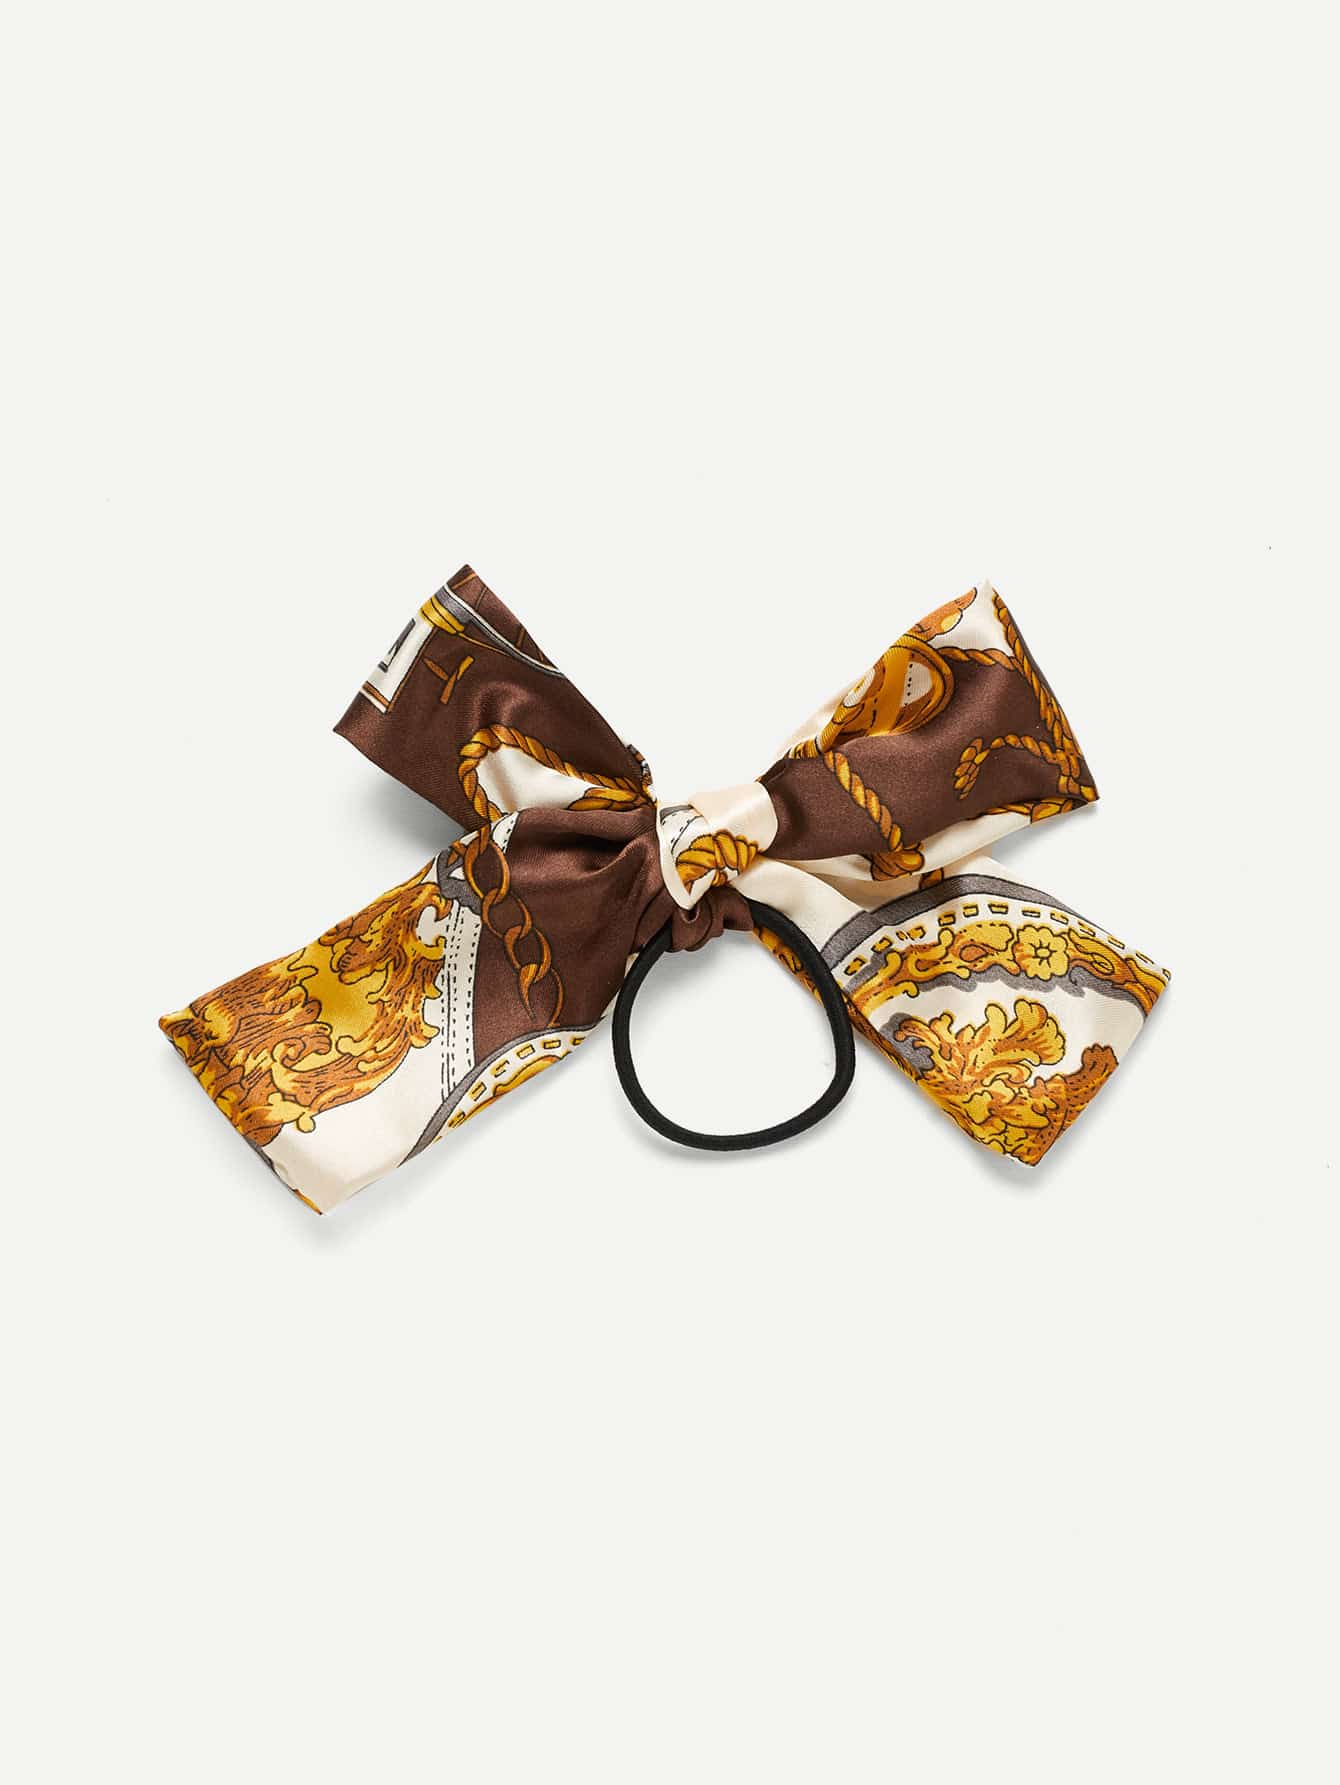 Ribbon Bow Hair Tie myamy 12pcs lot large 8 grosgrain ribbon boutique hair bows with alligator hair clips big bow girls hairbow for teens kids